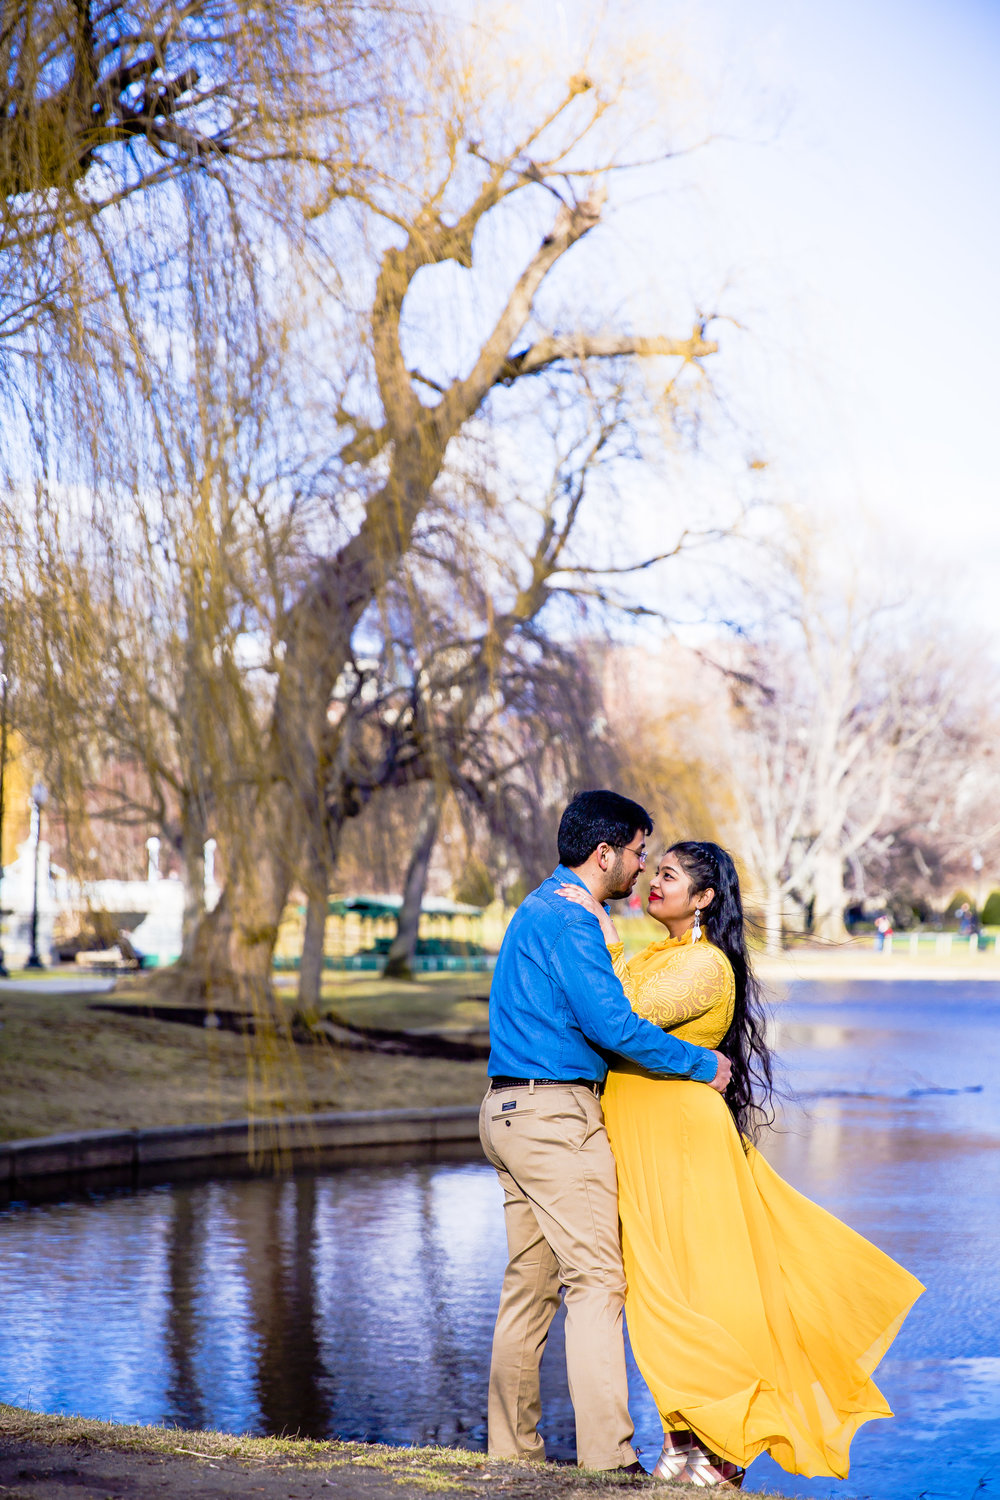 314A0918 Giovanni The Photographer Boston Engagment Photography Waterfront - Christopher Columbus Park - Public GardenPhotography School.jpg